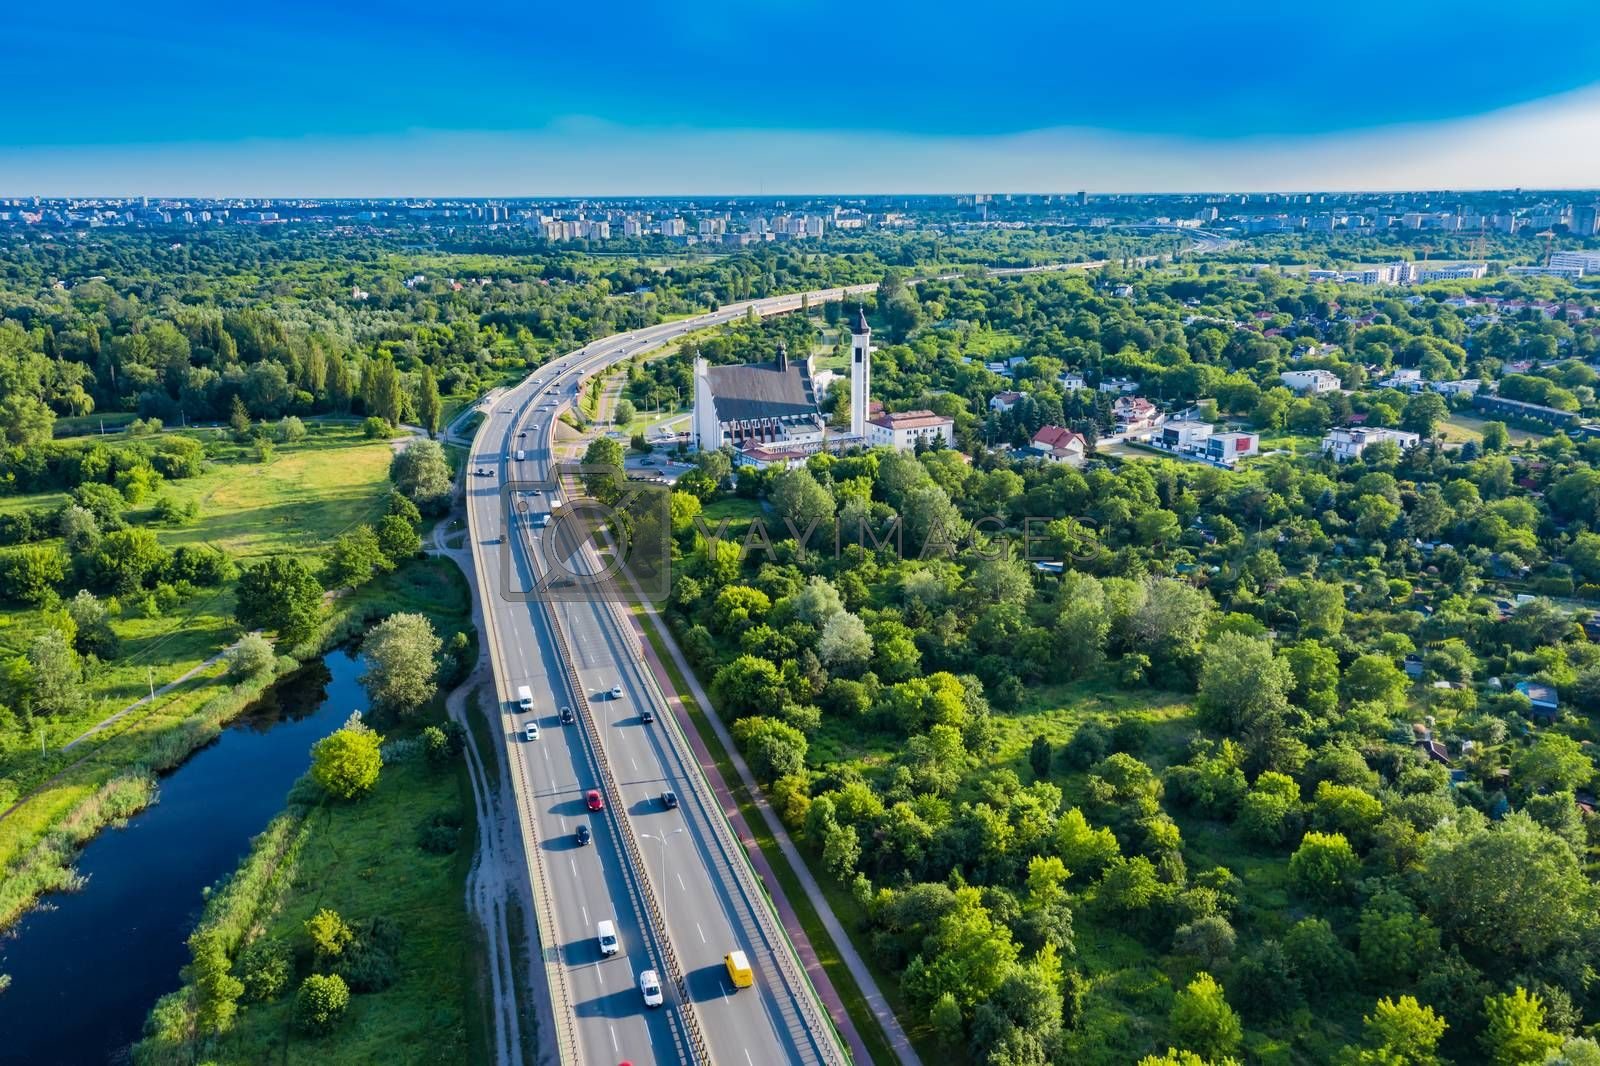 Aerial Drone Flight top down View of freeway busy city rush hour heavy traffic jam highway. Aerial view of the vehicular intersection, traffic at peak hour with cars on the road. Bridge Top View